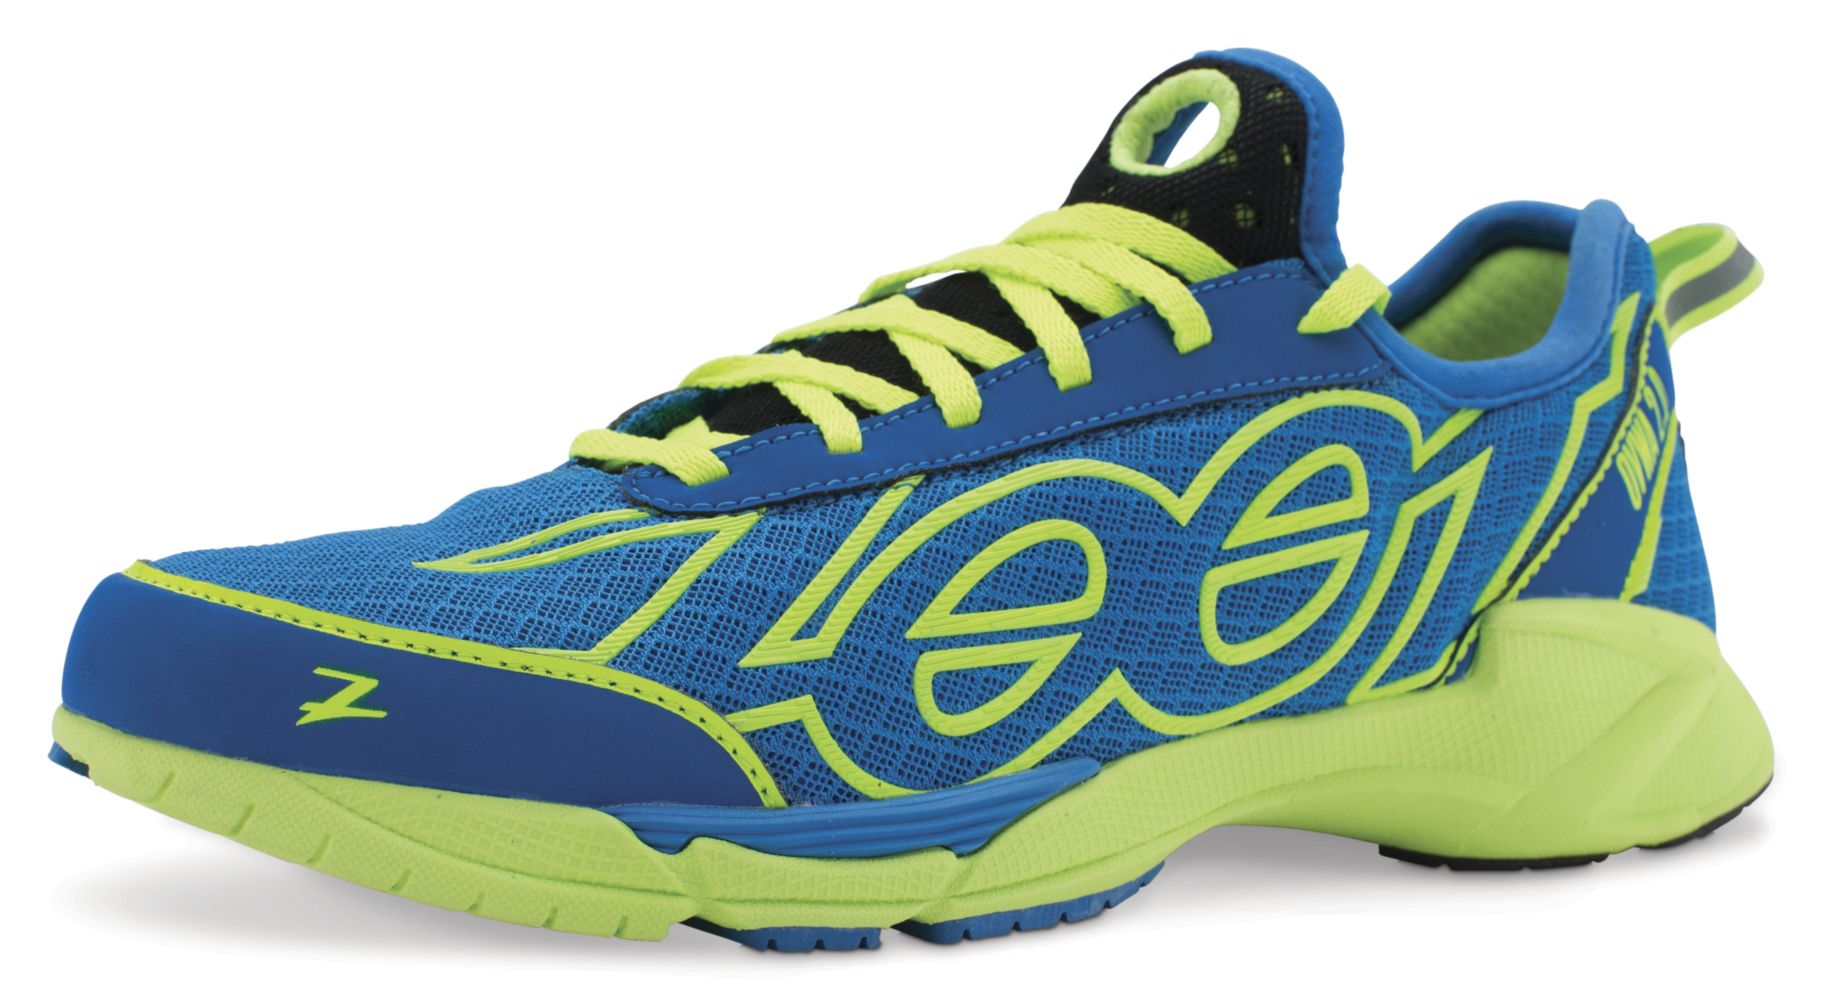 Where Can I Buy Zoot Running Shoes 5